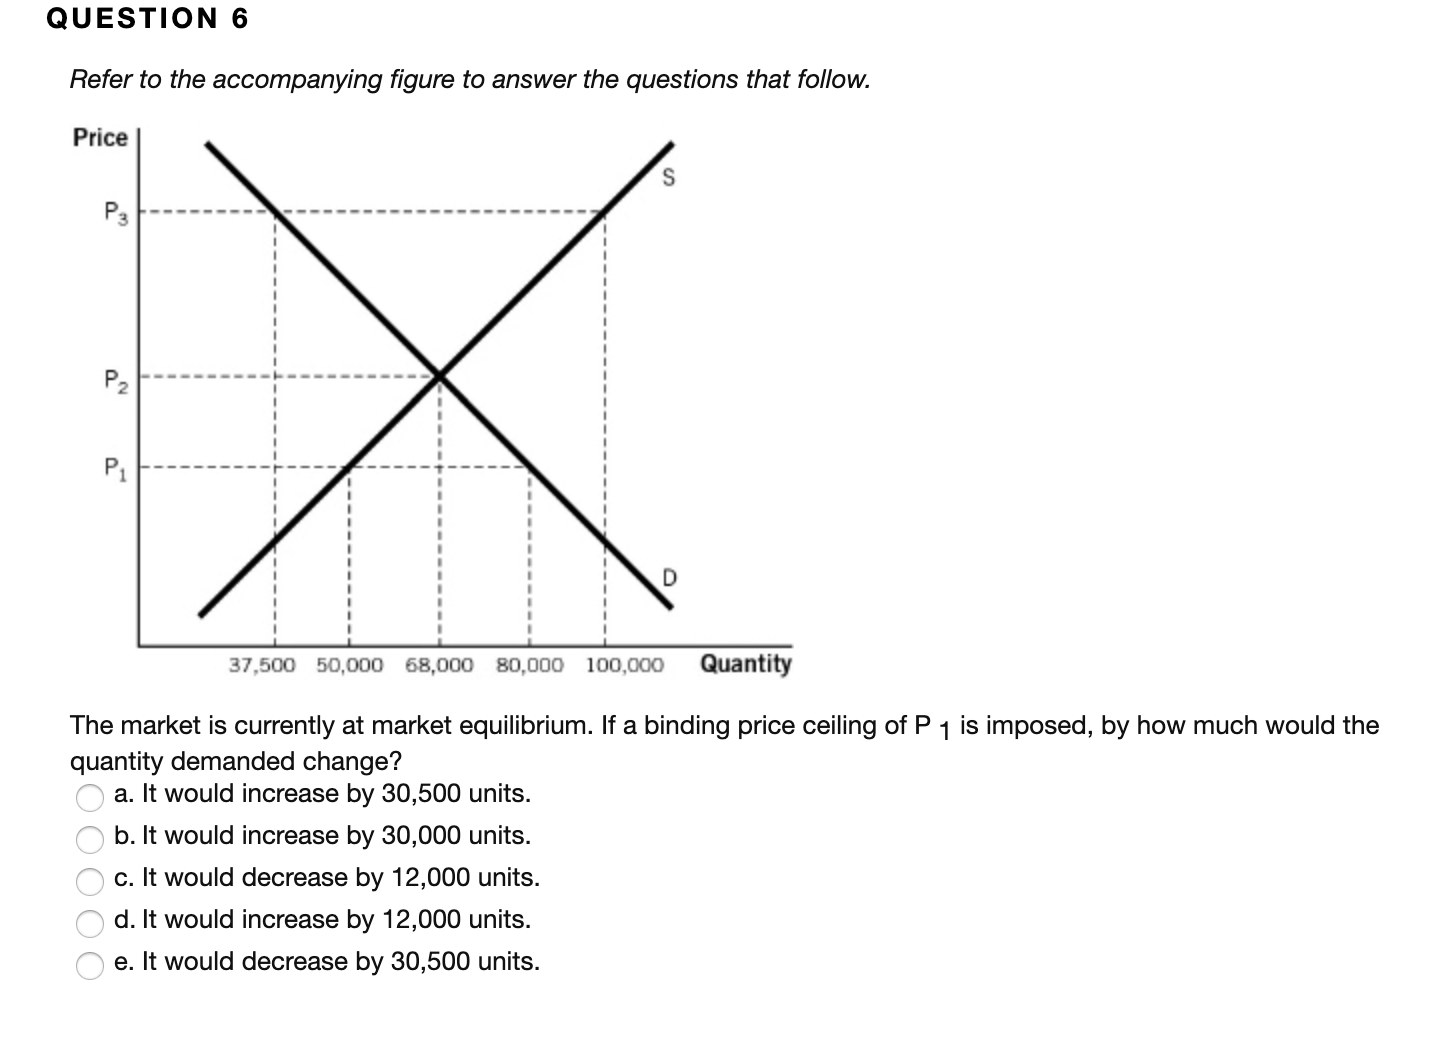 QUESTION 6 Refer to the accompanying figure to answer the questions that follow. Price P3 P2 P1 Quantity 37,500 50,000 68,000 80,000 100,000 The market is currently at market equilibrium. If a binding price ceiling of P 1 is imposed, by how much would the quantity demanded change? a. It would increase by 30,500 units. b. It would increase by 30,000 units. c. It would decrease by 12,000 units. d. It would increase by 12,000 units. e. It would decrease by 30,500 units. OOOO